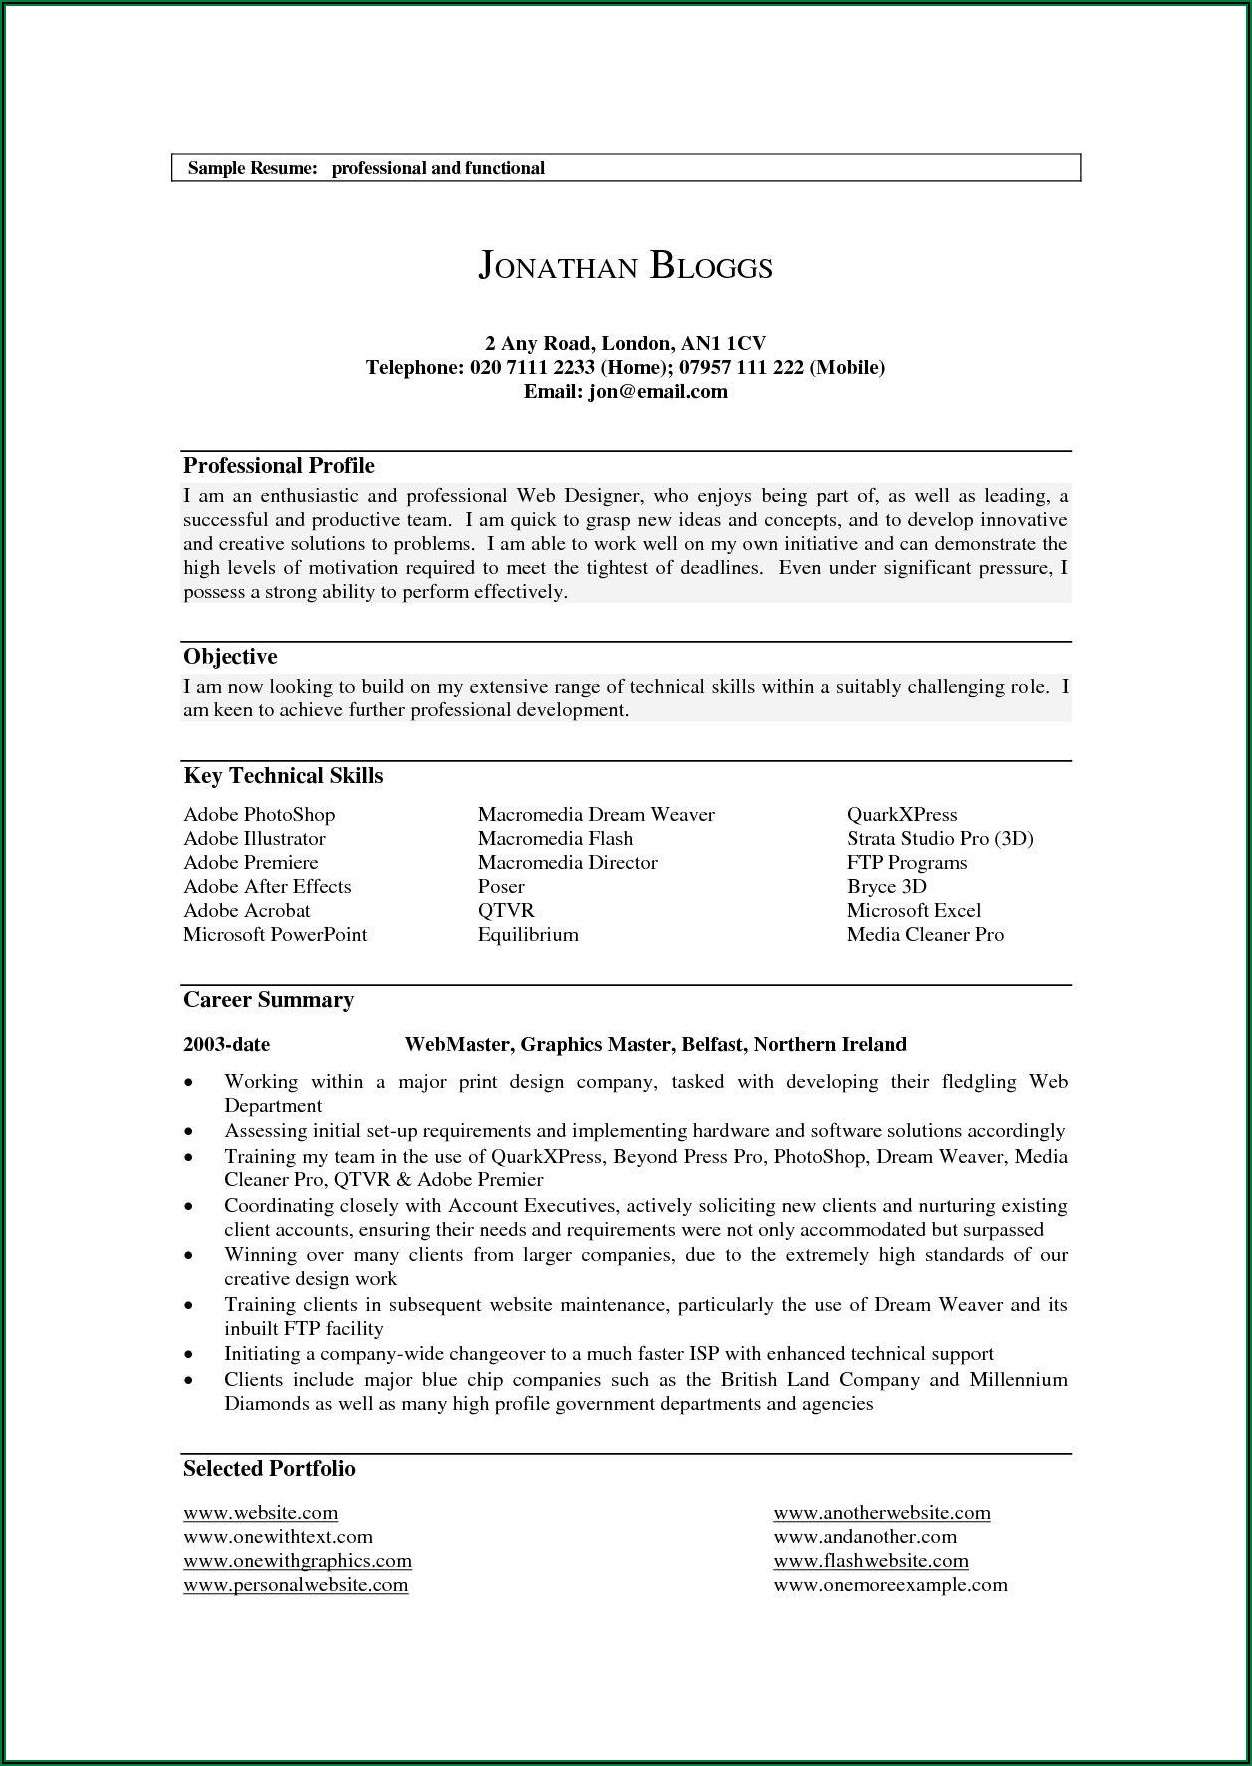 Examples Of Professional Profiles For Cv